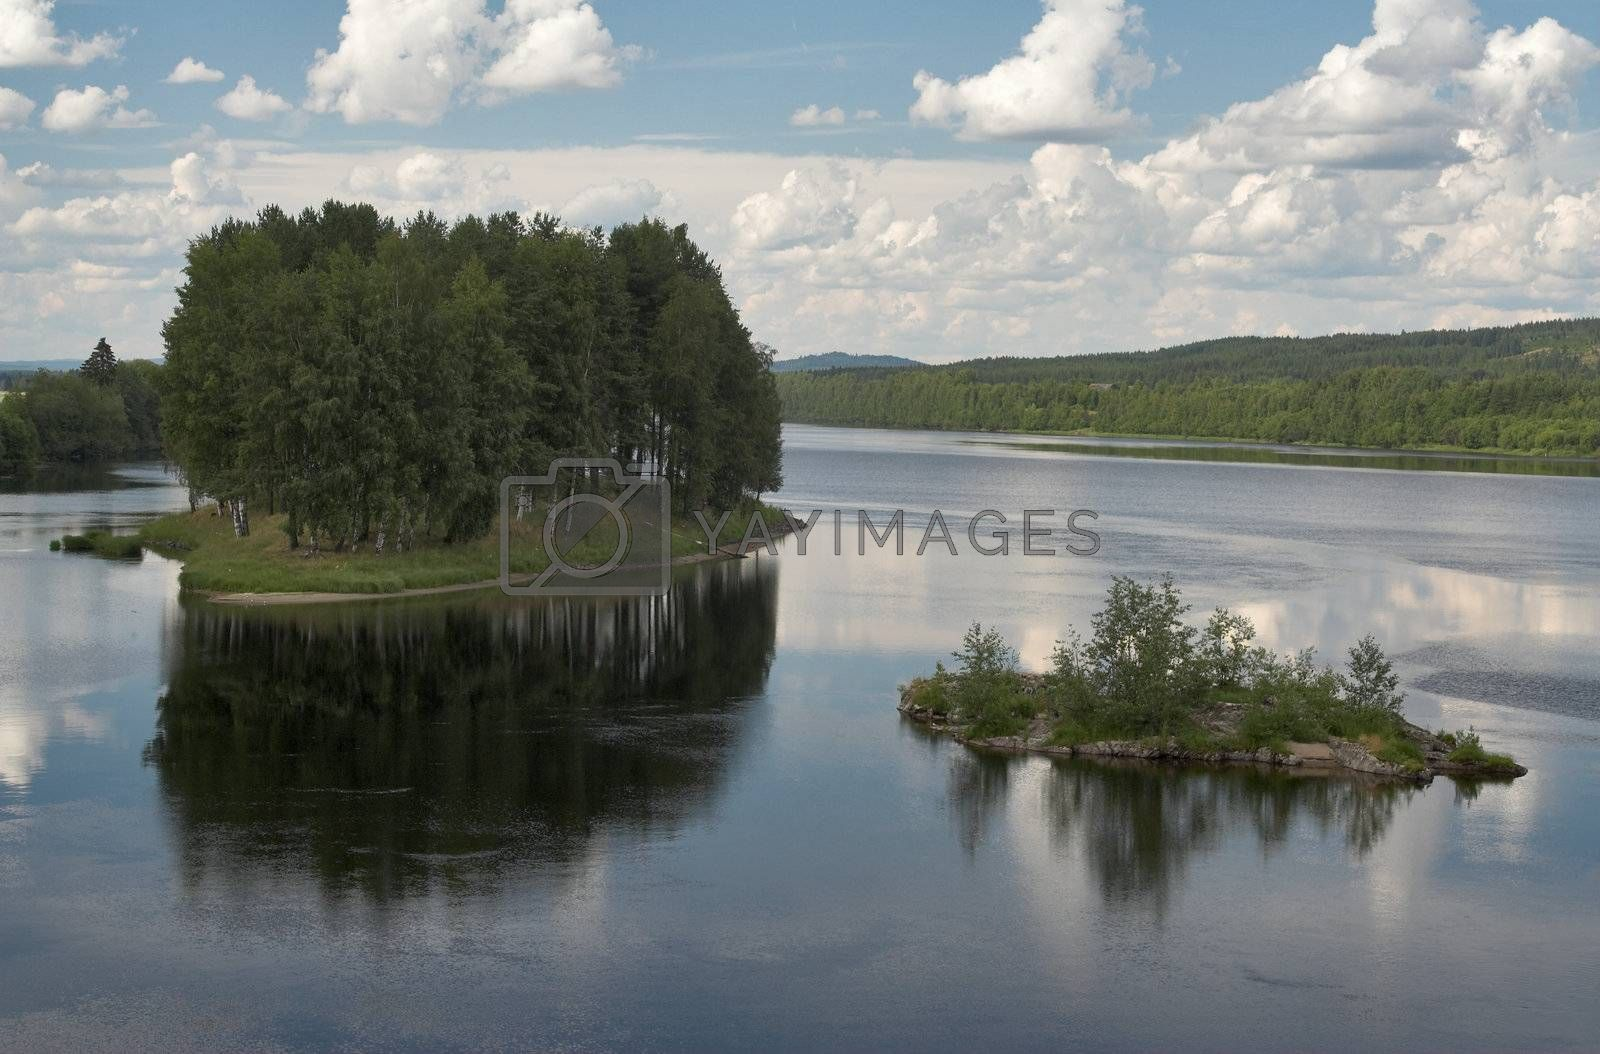 Two small islands on a river - Stoa, Norway